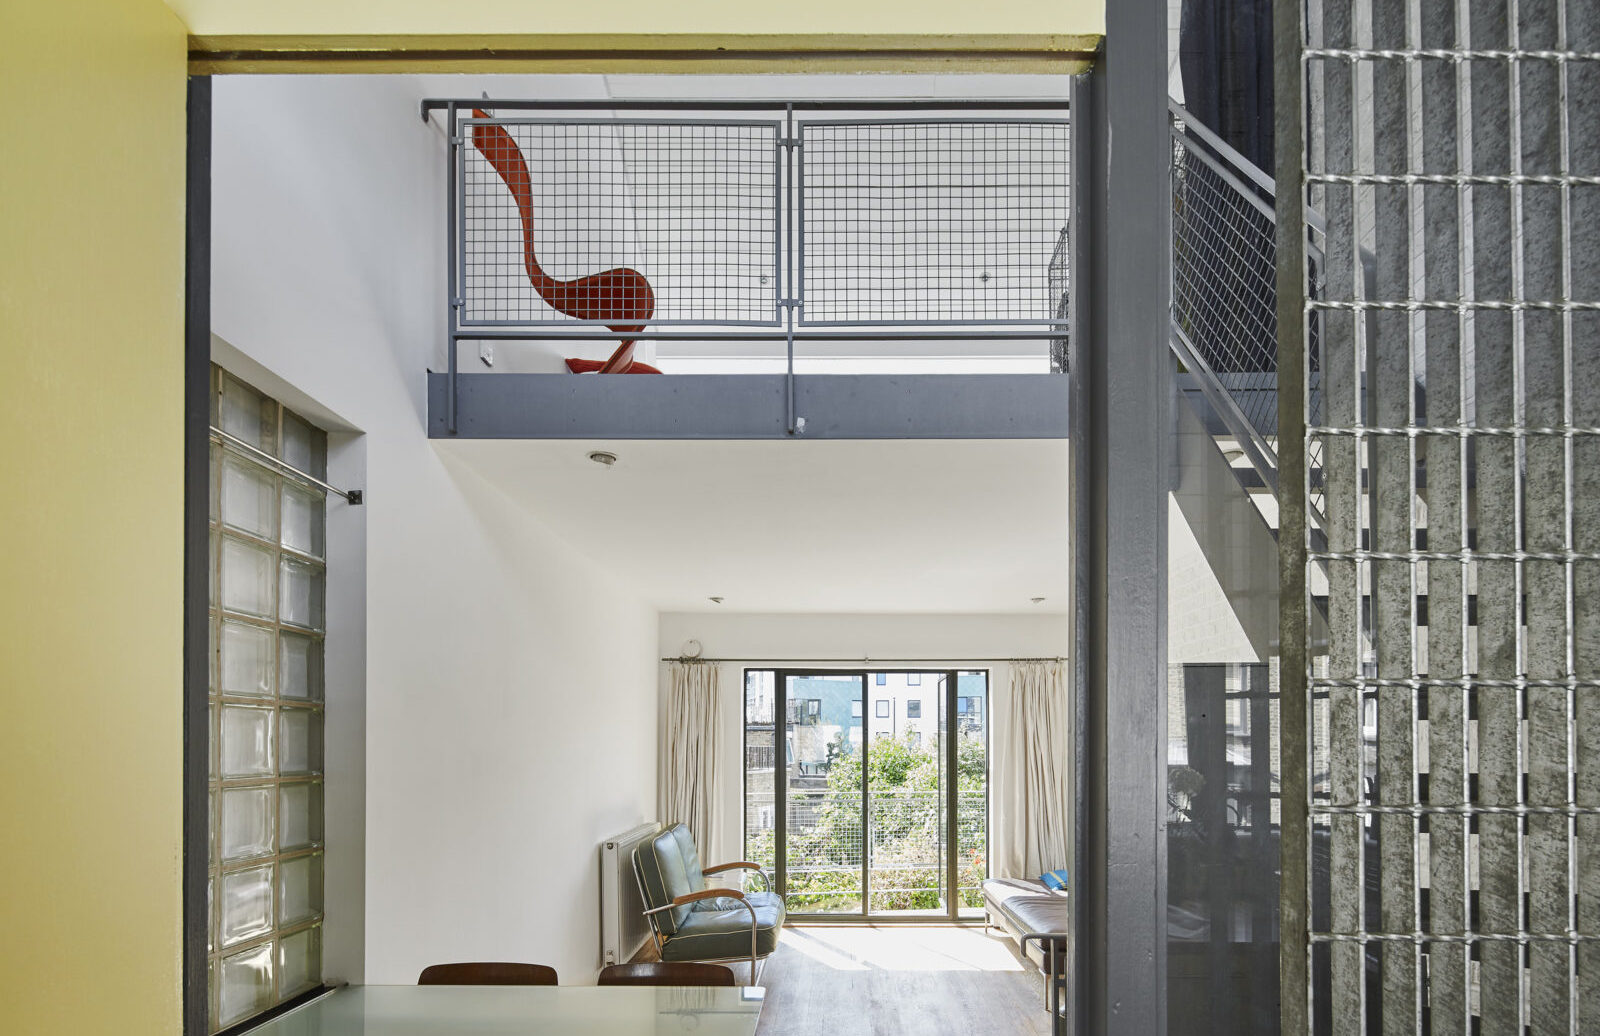 Venus is a London townhouse with Japanese roots - the Highbury home was inspired by the traditional machiya or merchant's houses found across Kyoto.